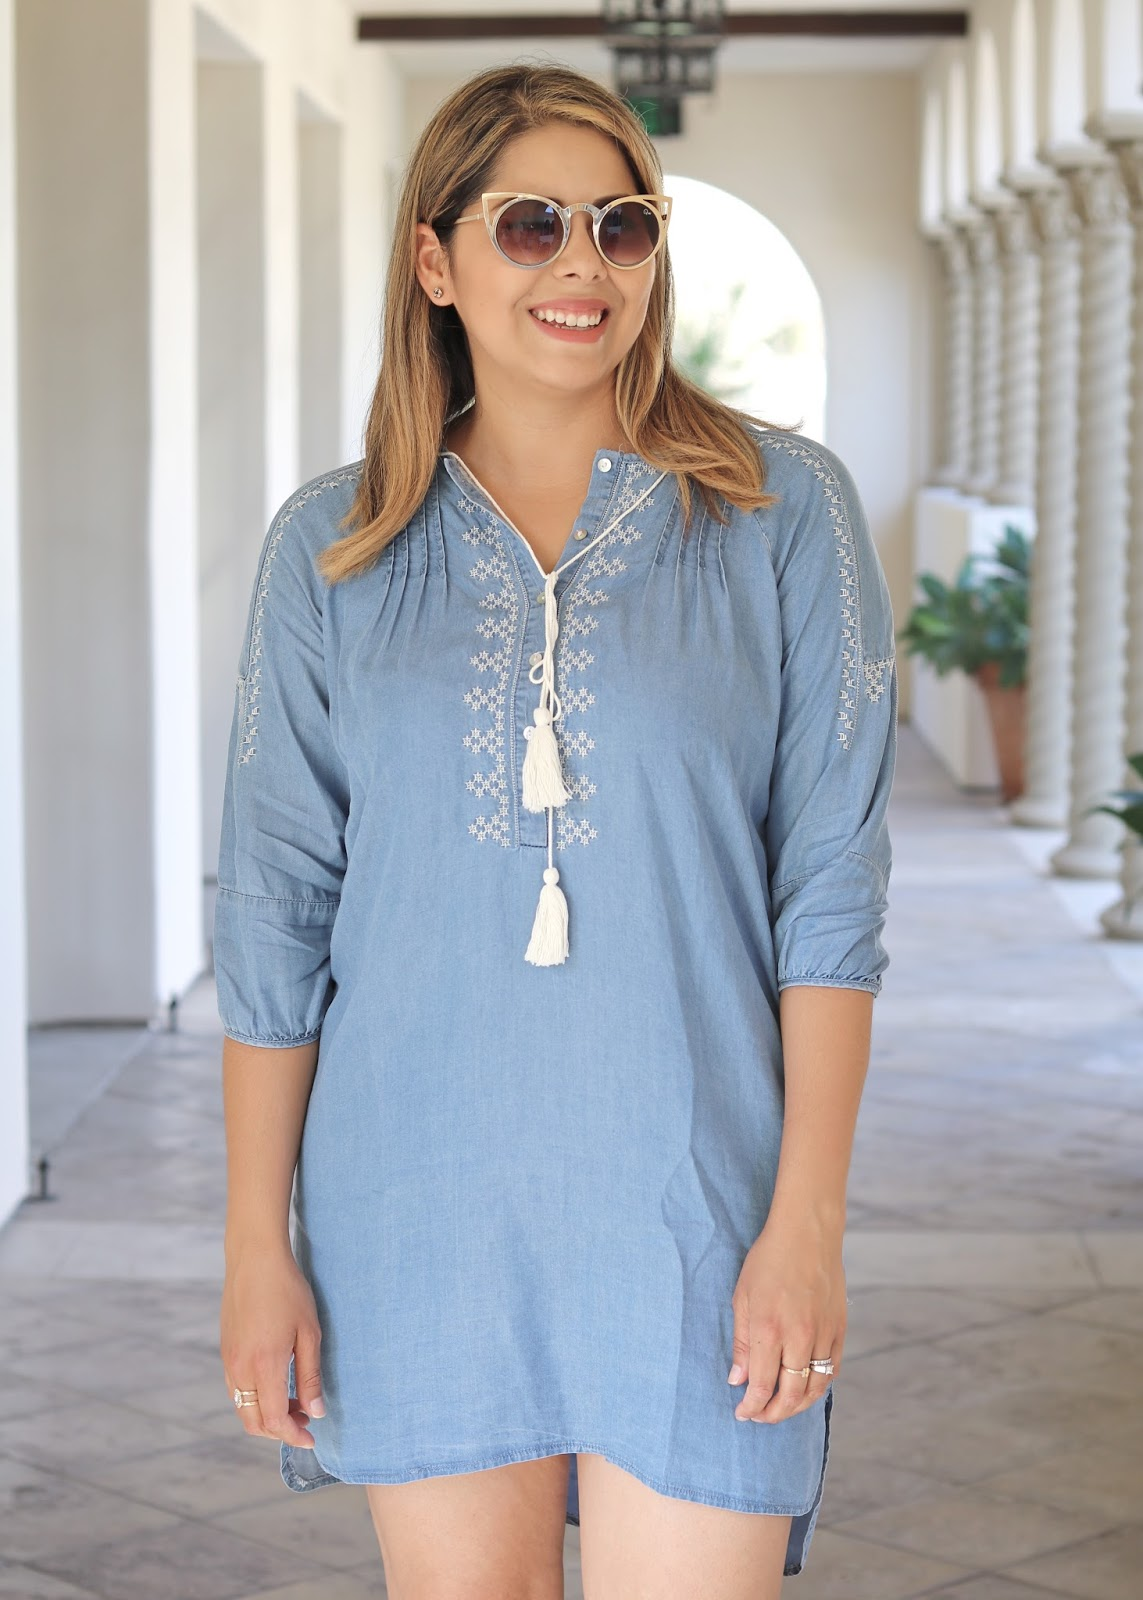 how to wear a denim dress, how to wear cateye sunglasses, tory burch tan purse